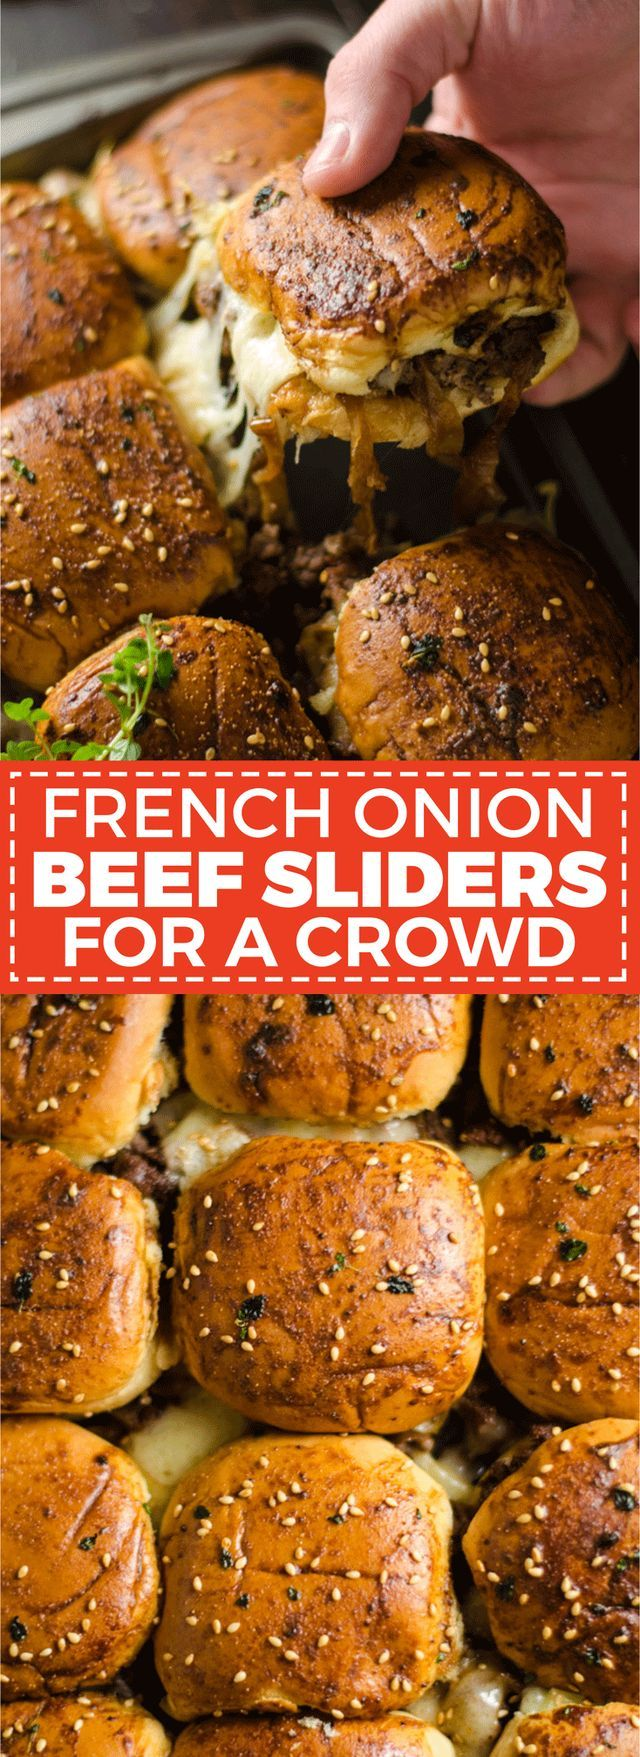 Daaaamn, Morgan! Back at it again with the white vans french onion soup spin-offs! … Is what I imagine you're yelling at your screen right now. Because if there's one thing that I most certainly am, i